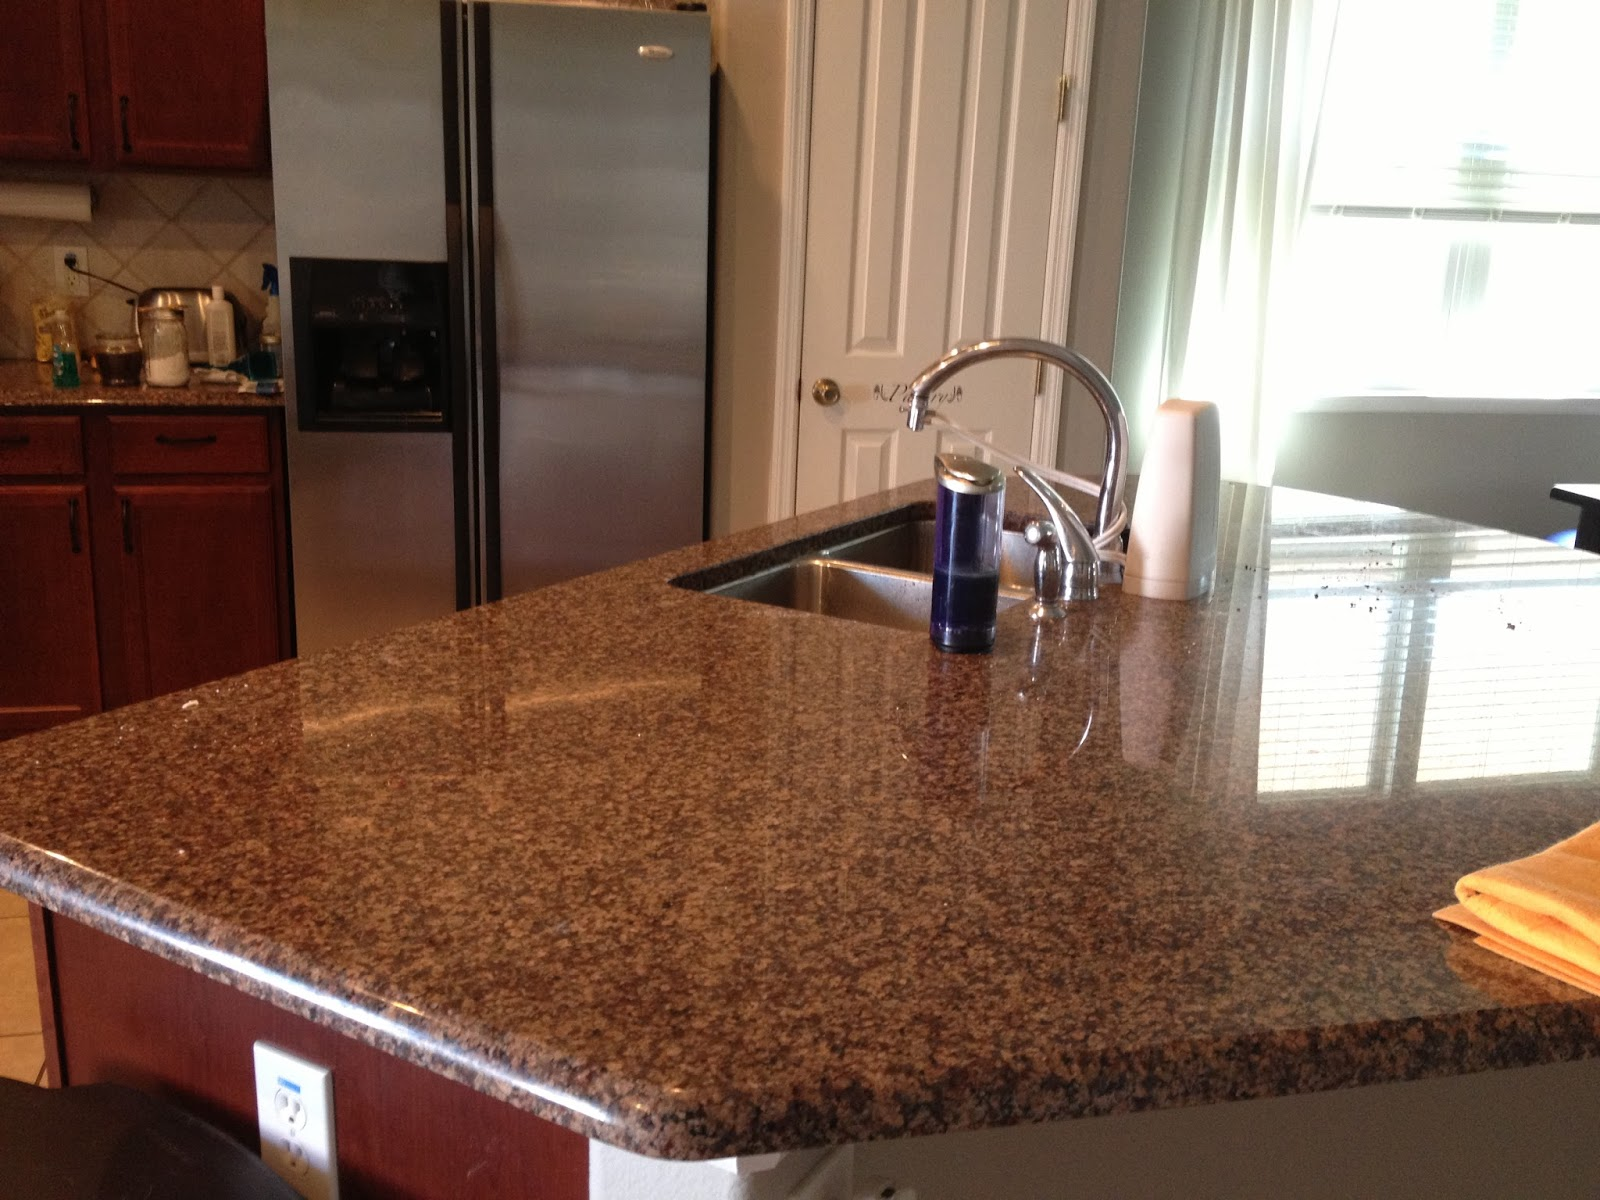 Natural Way To Clean Granite Countertops How To Clean Granite Naturally The Right Way Overthrow